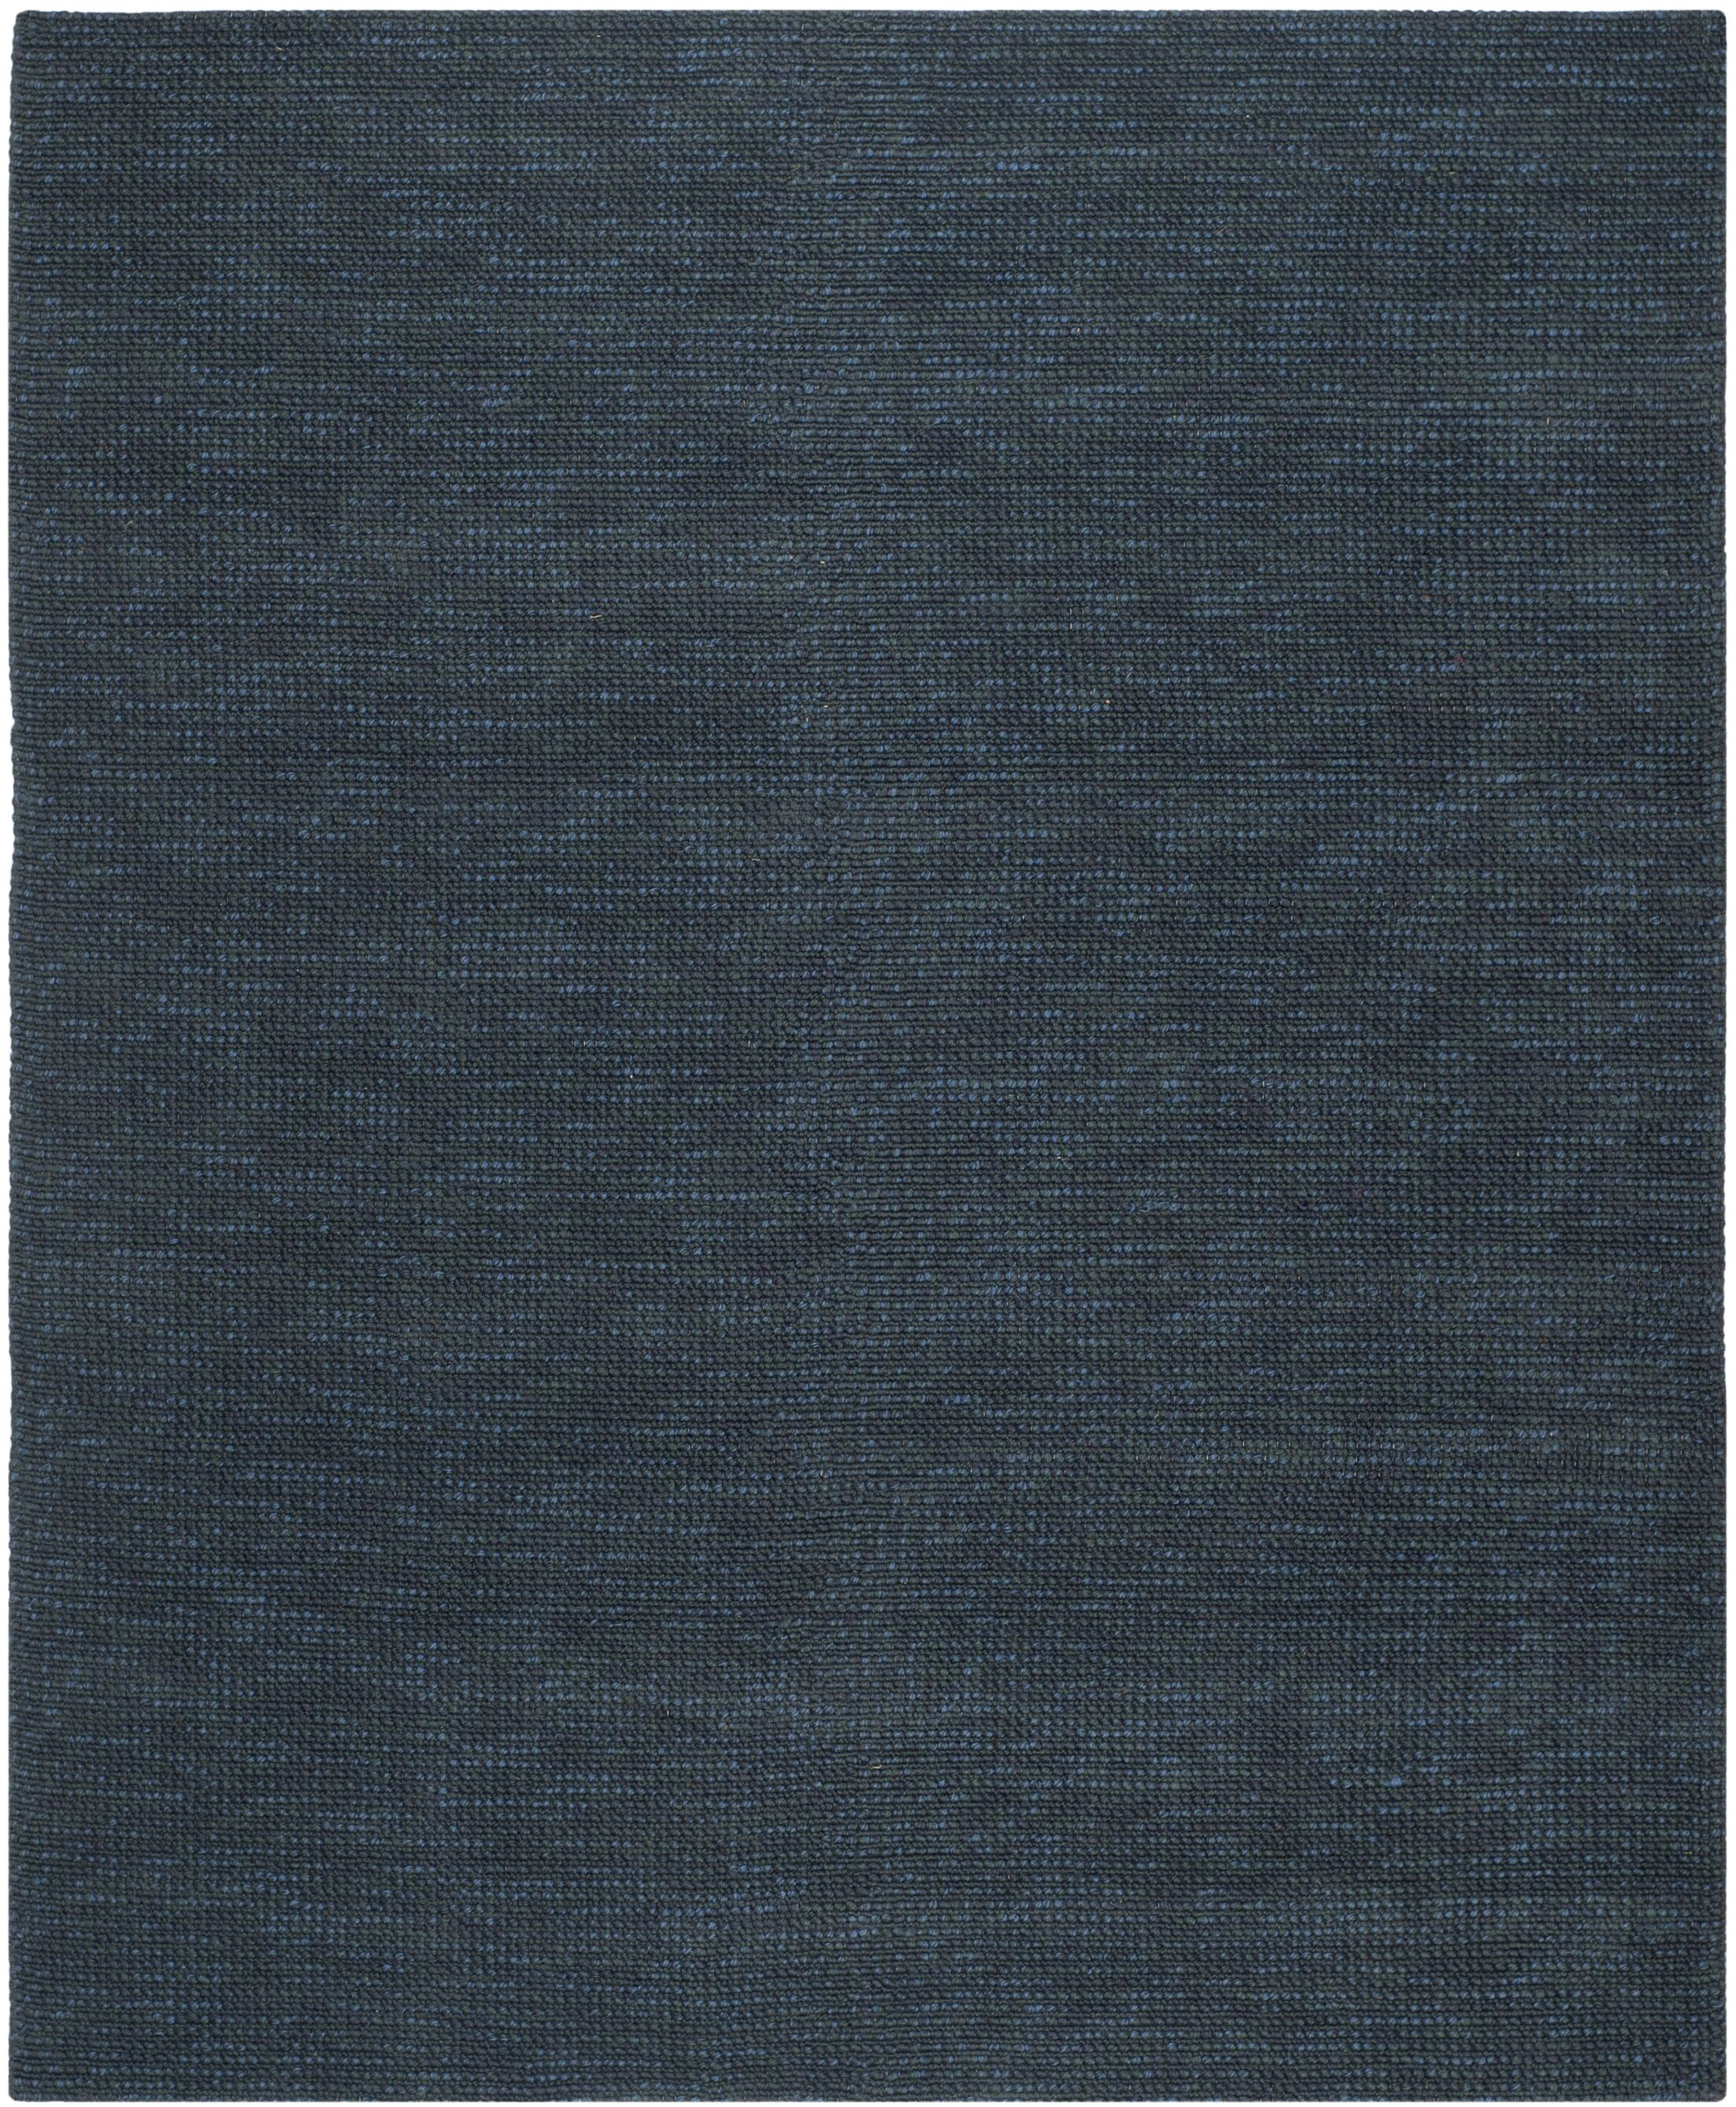 Nubby Tweed Ink Area Rug Rug Size: Rectangle 5' x 8'